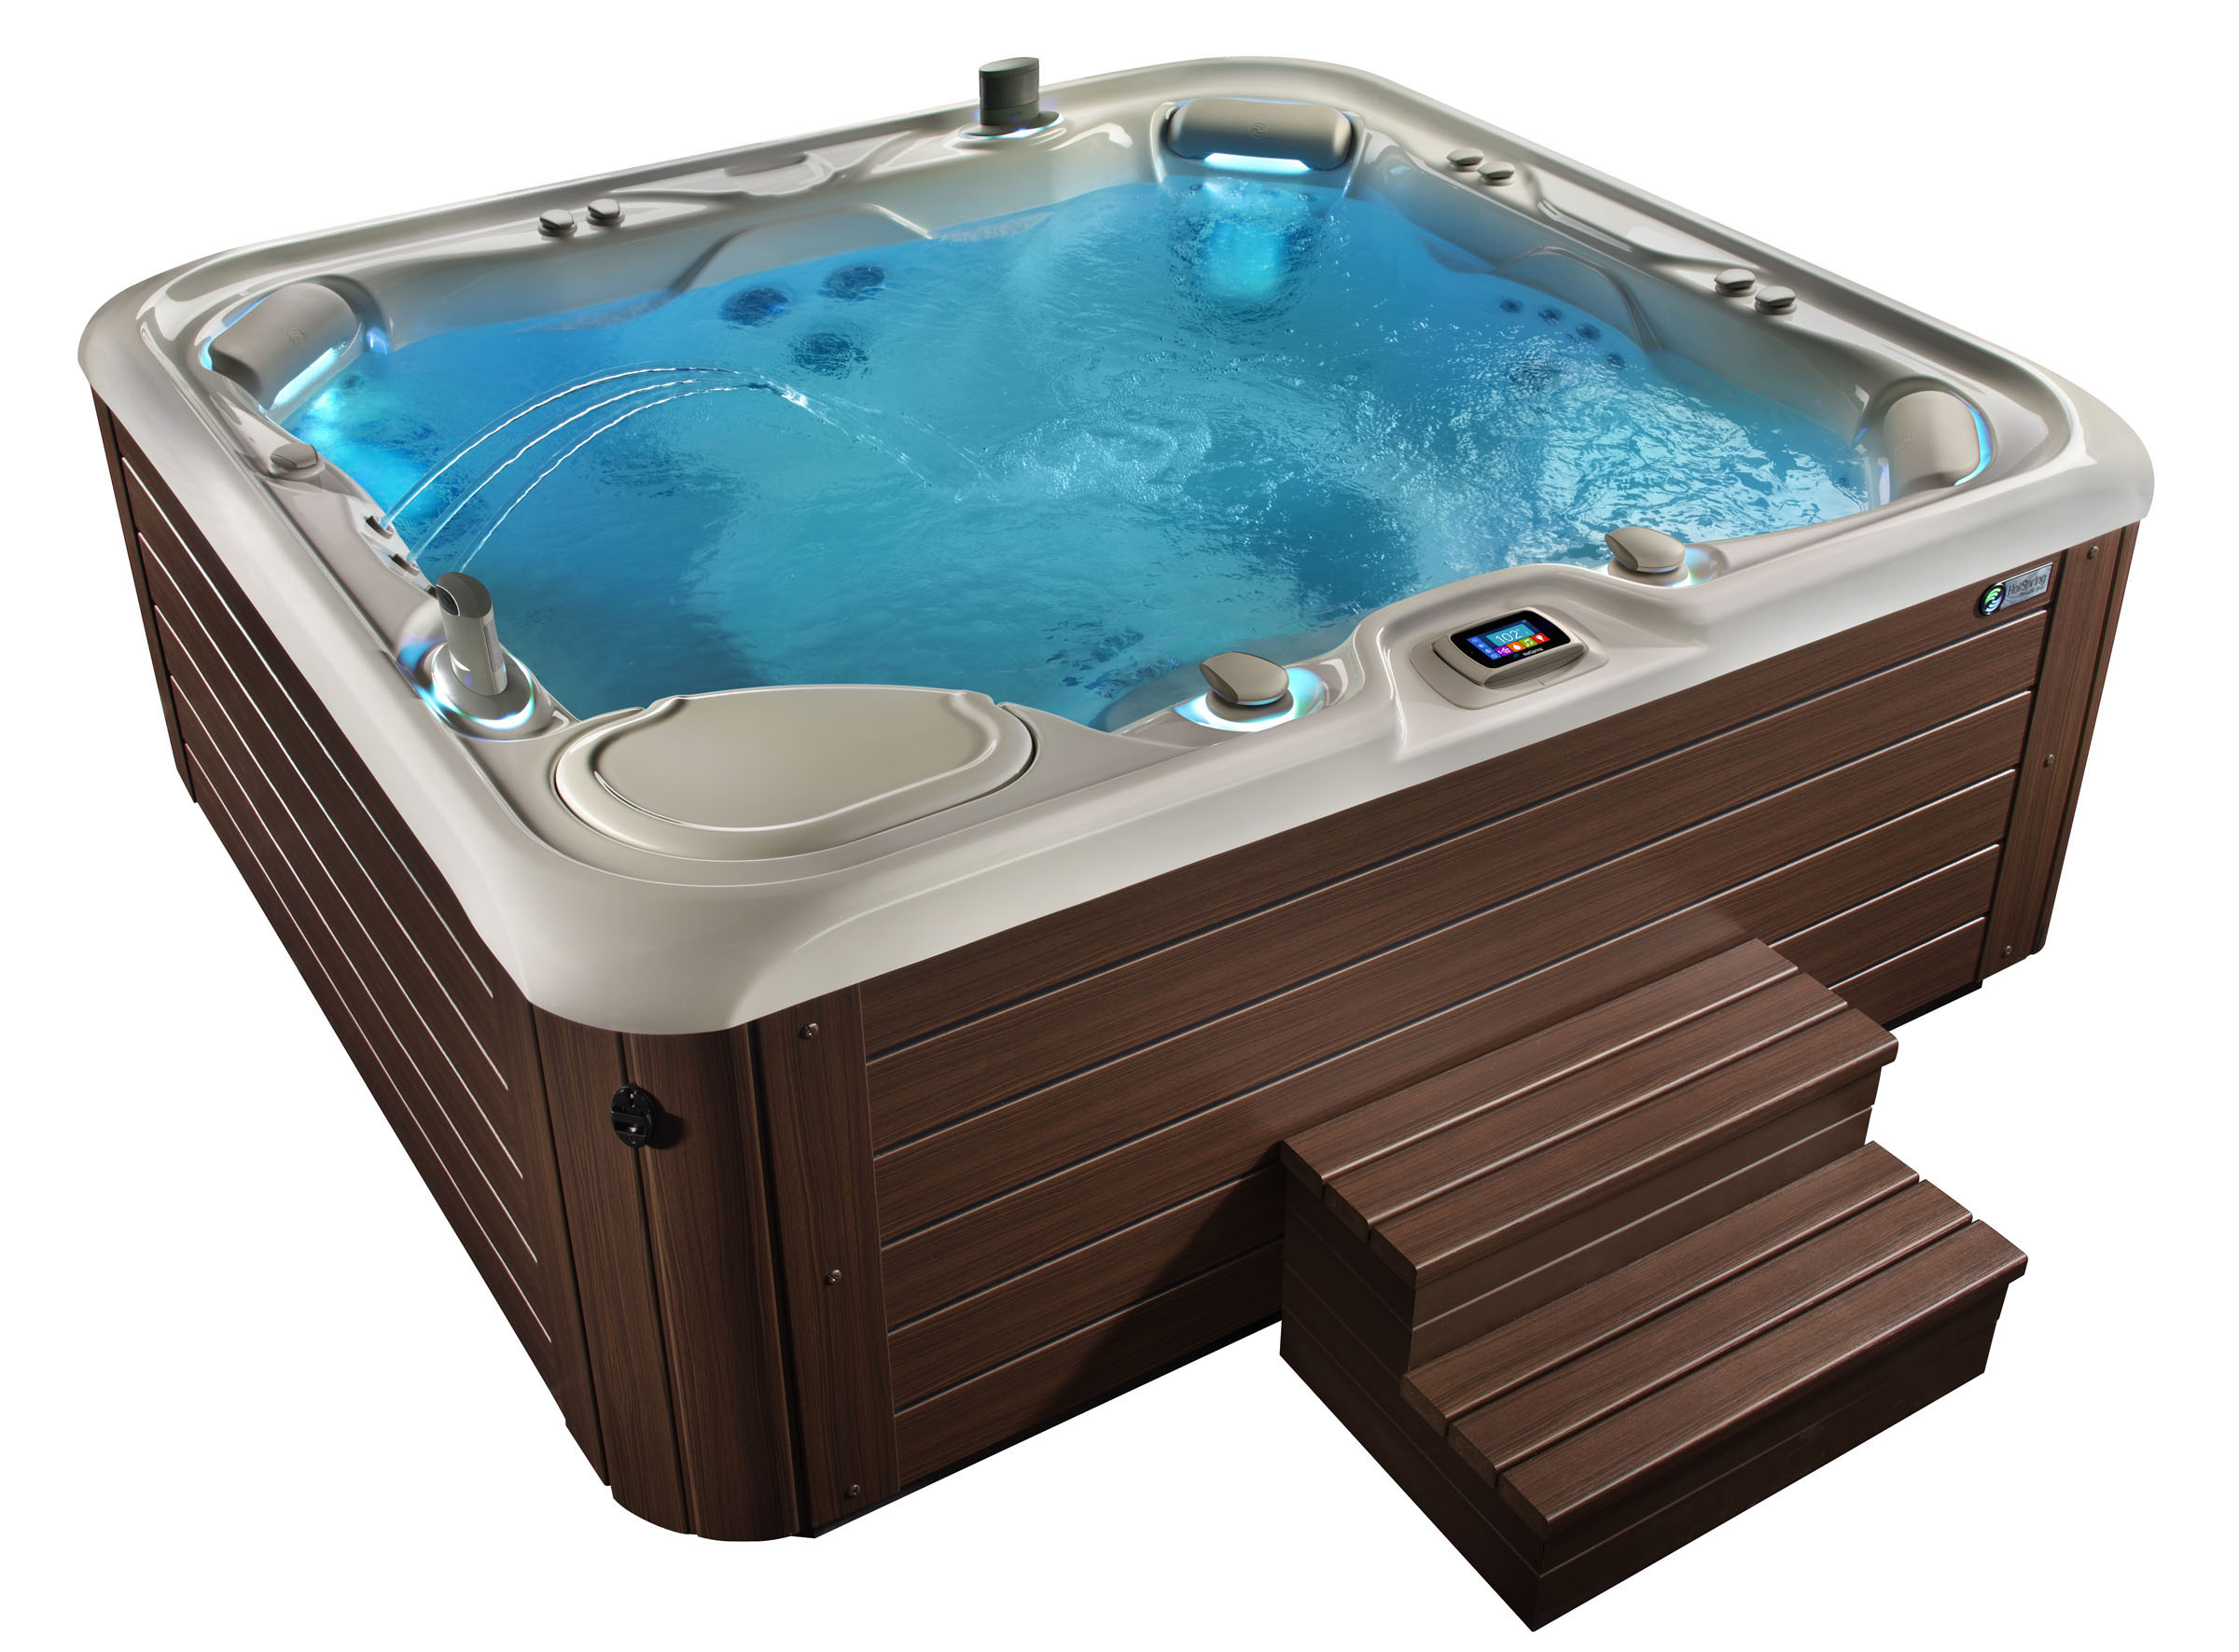 Vanguard | In the Highlife Series of Hot Tubs by Hot Spring